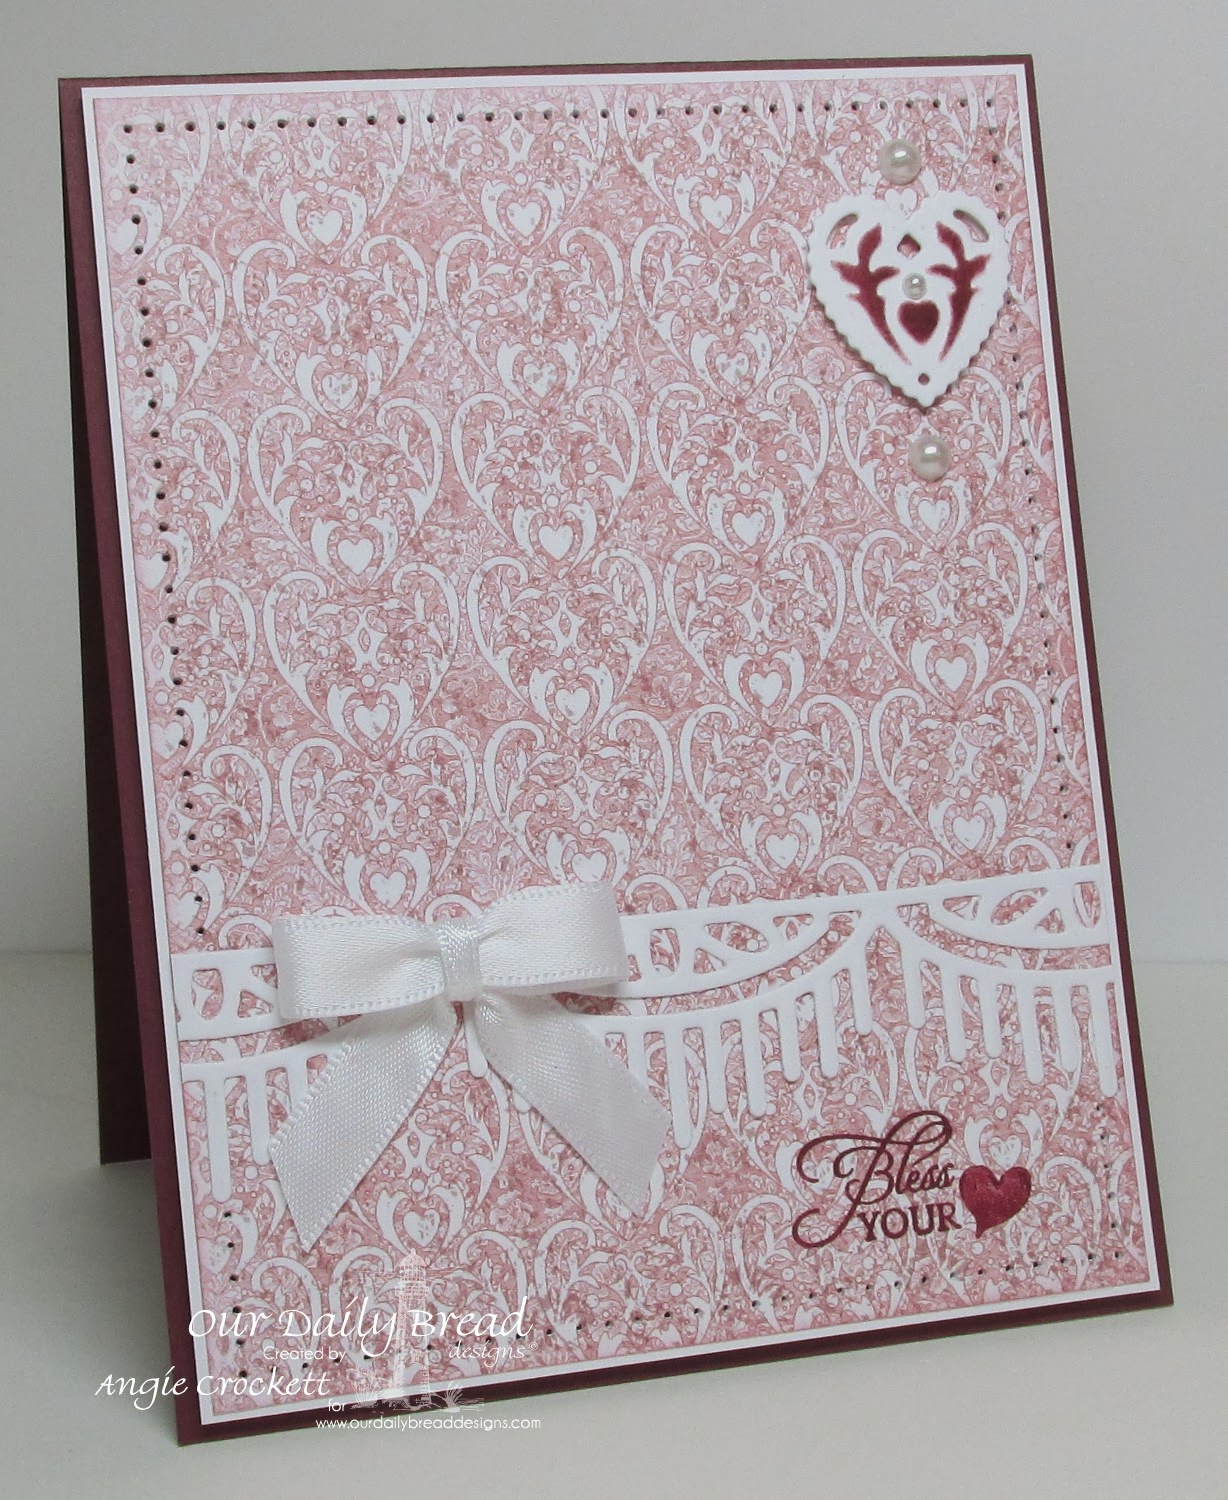 ODBD Bless Your Heart, ODBD Heart and Soul Designer Paper Collection, ODBD Custom Ornate Hearts Die Set, ODBD Custom Decorative Borders Die Set, Card Designer Angie Crockett